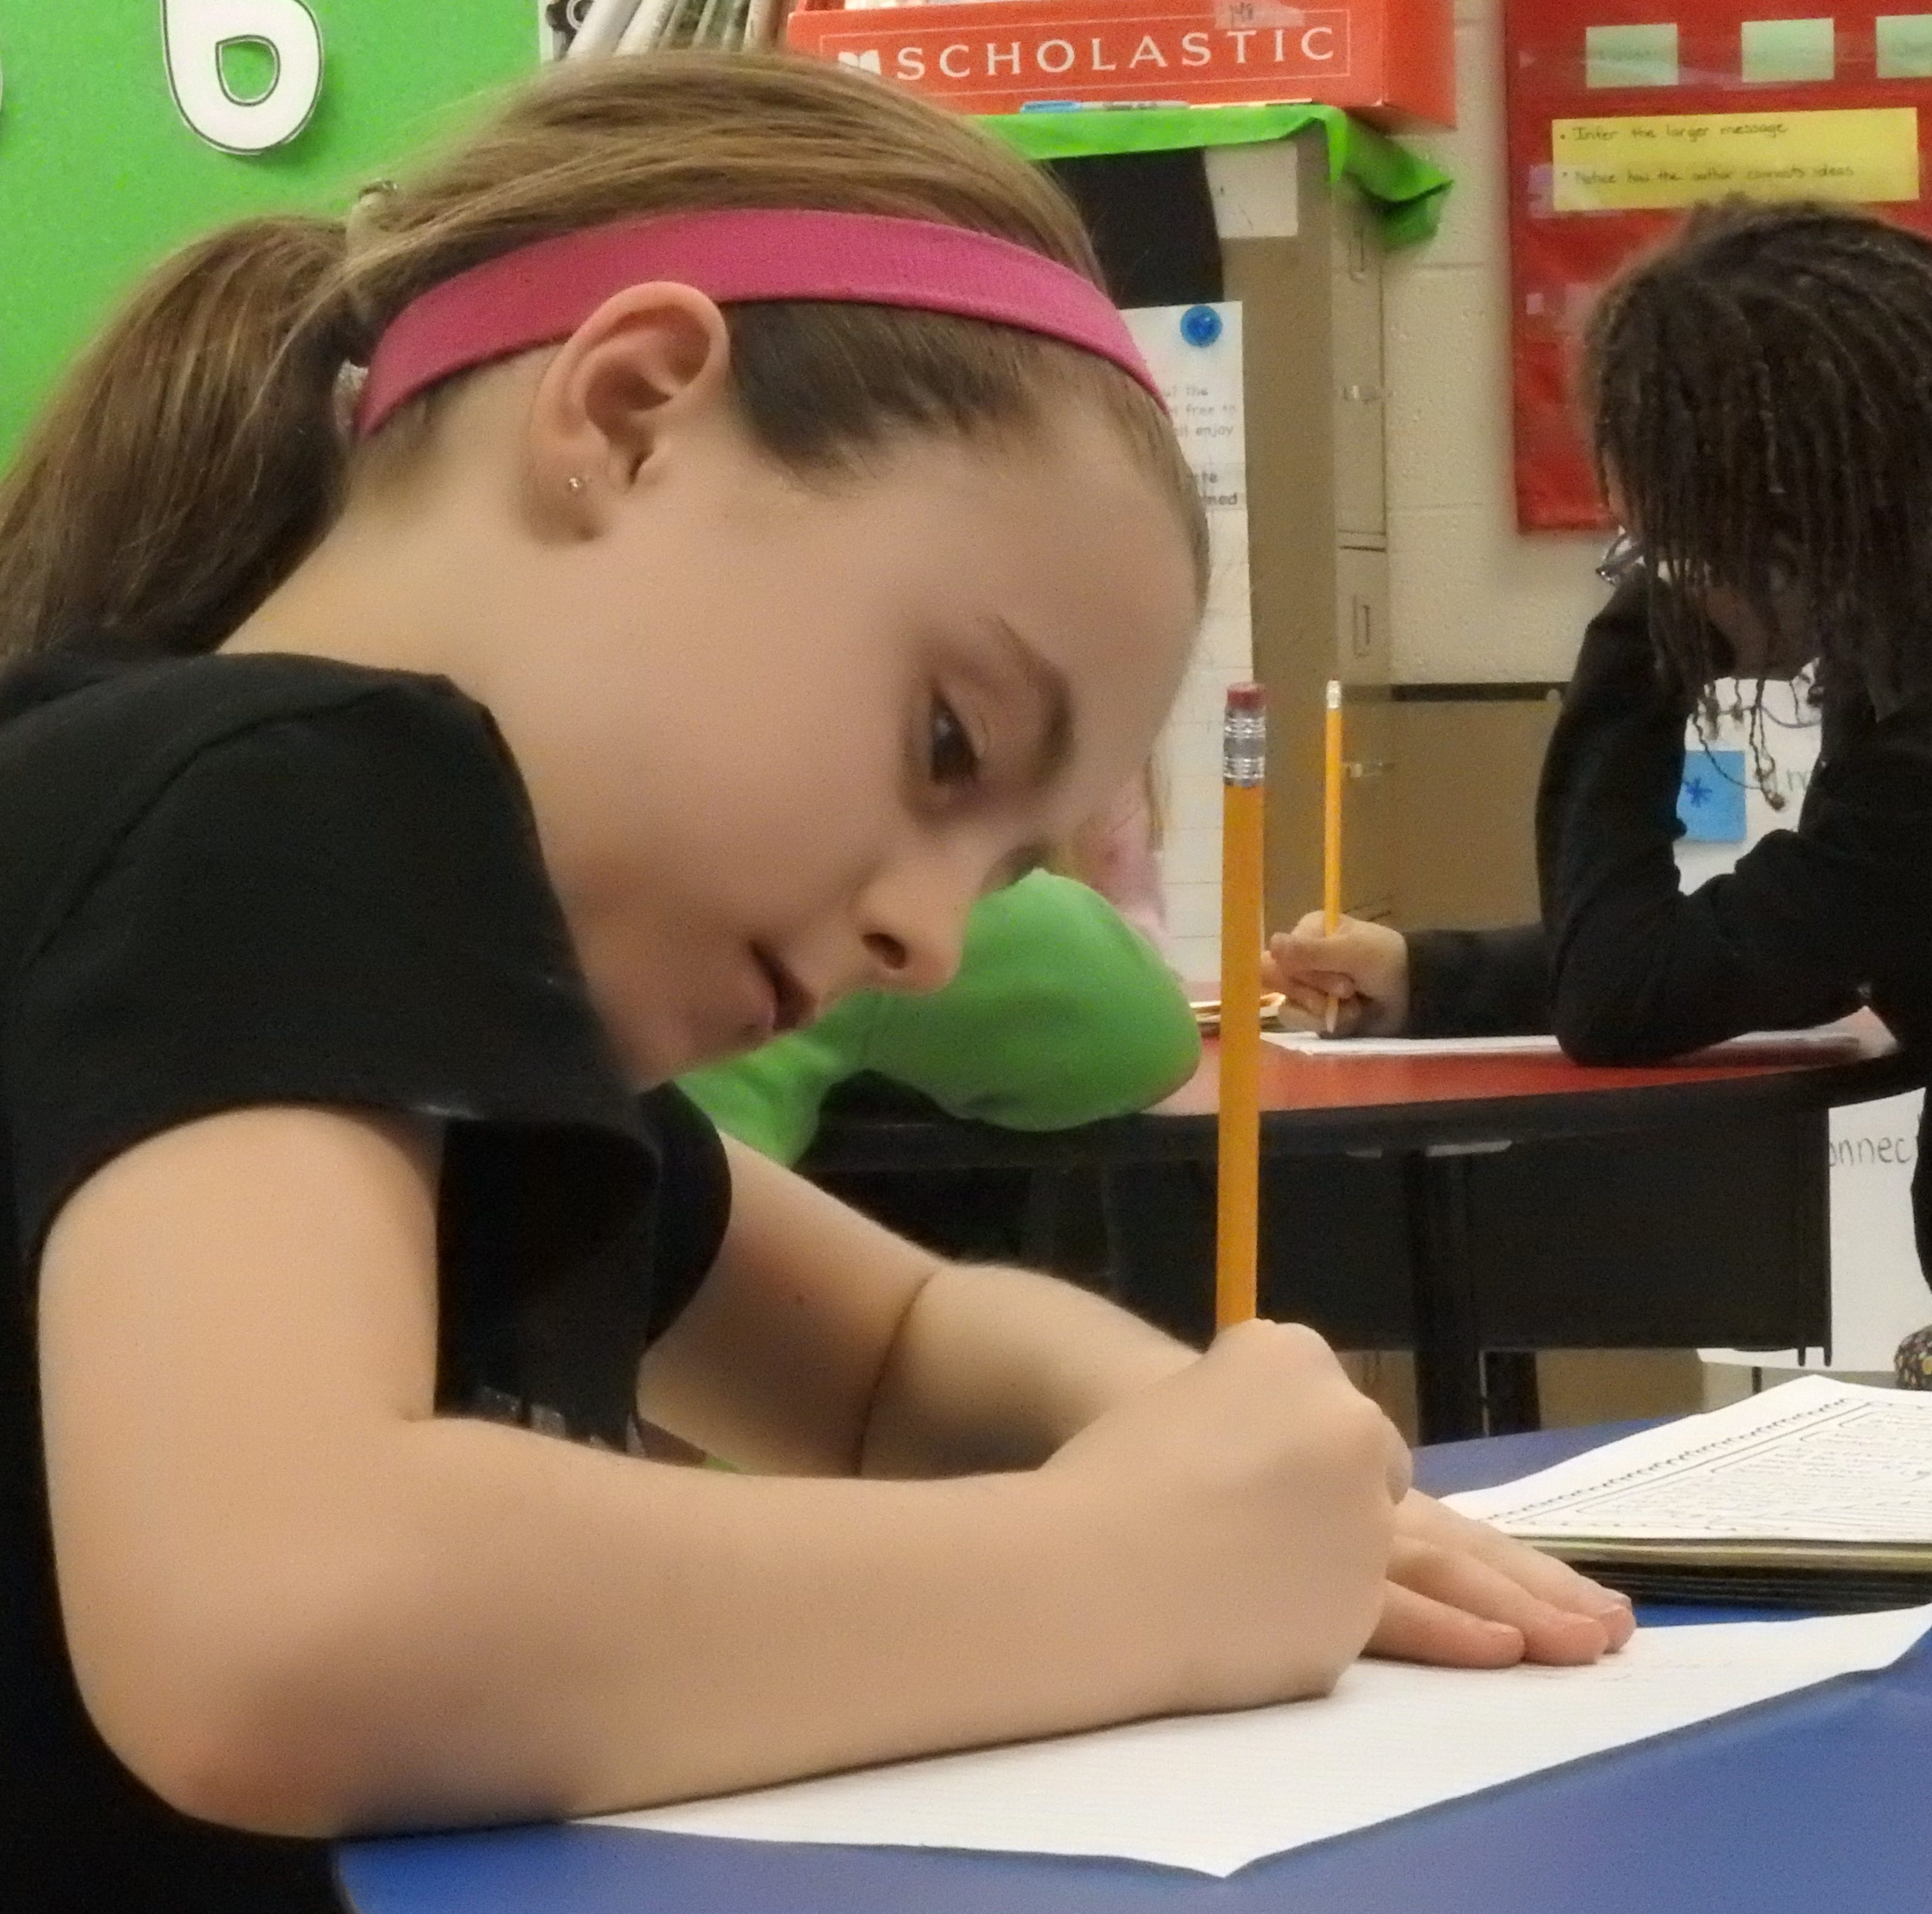 Cursive demoted, but not erased, in local schools